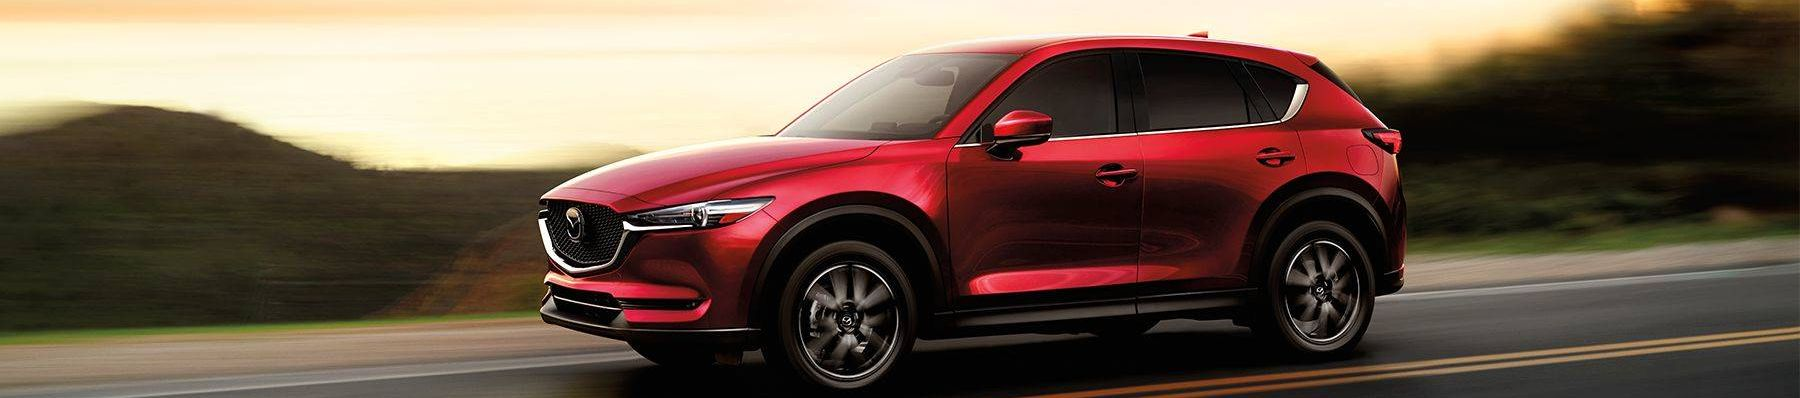 2018 Mazda CX-5 Financing near Folsom, CA